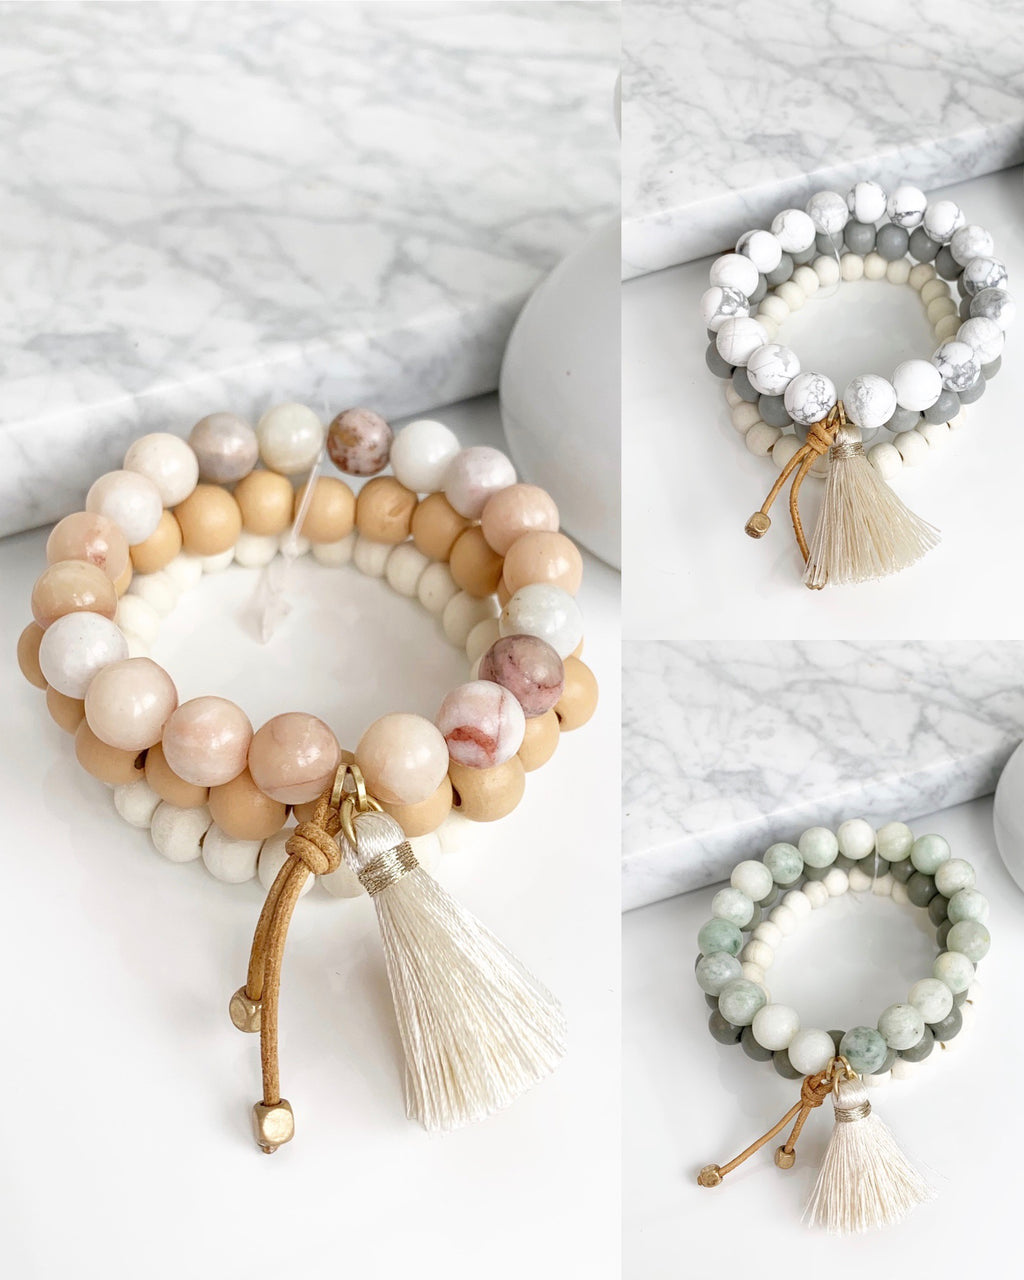 Wood with Natural Stone Bead Bracelet